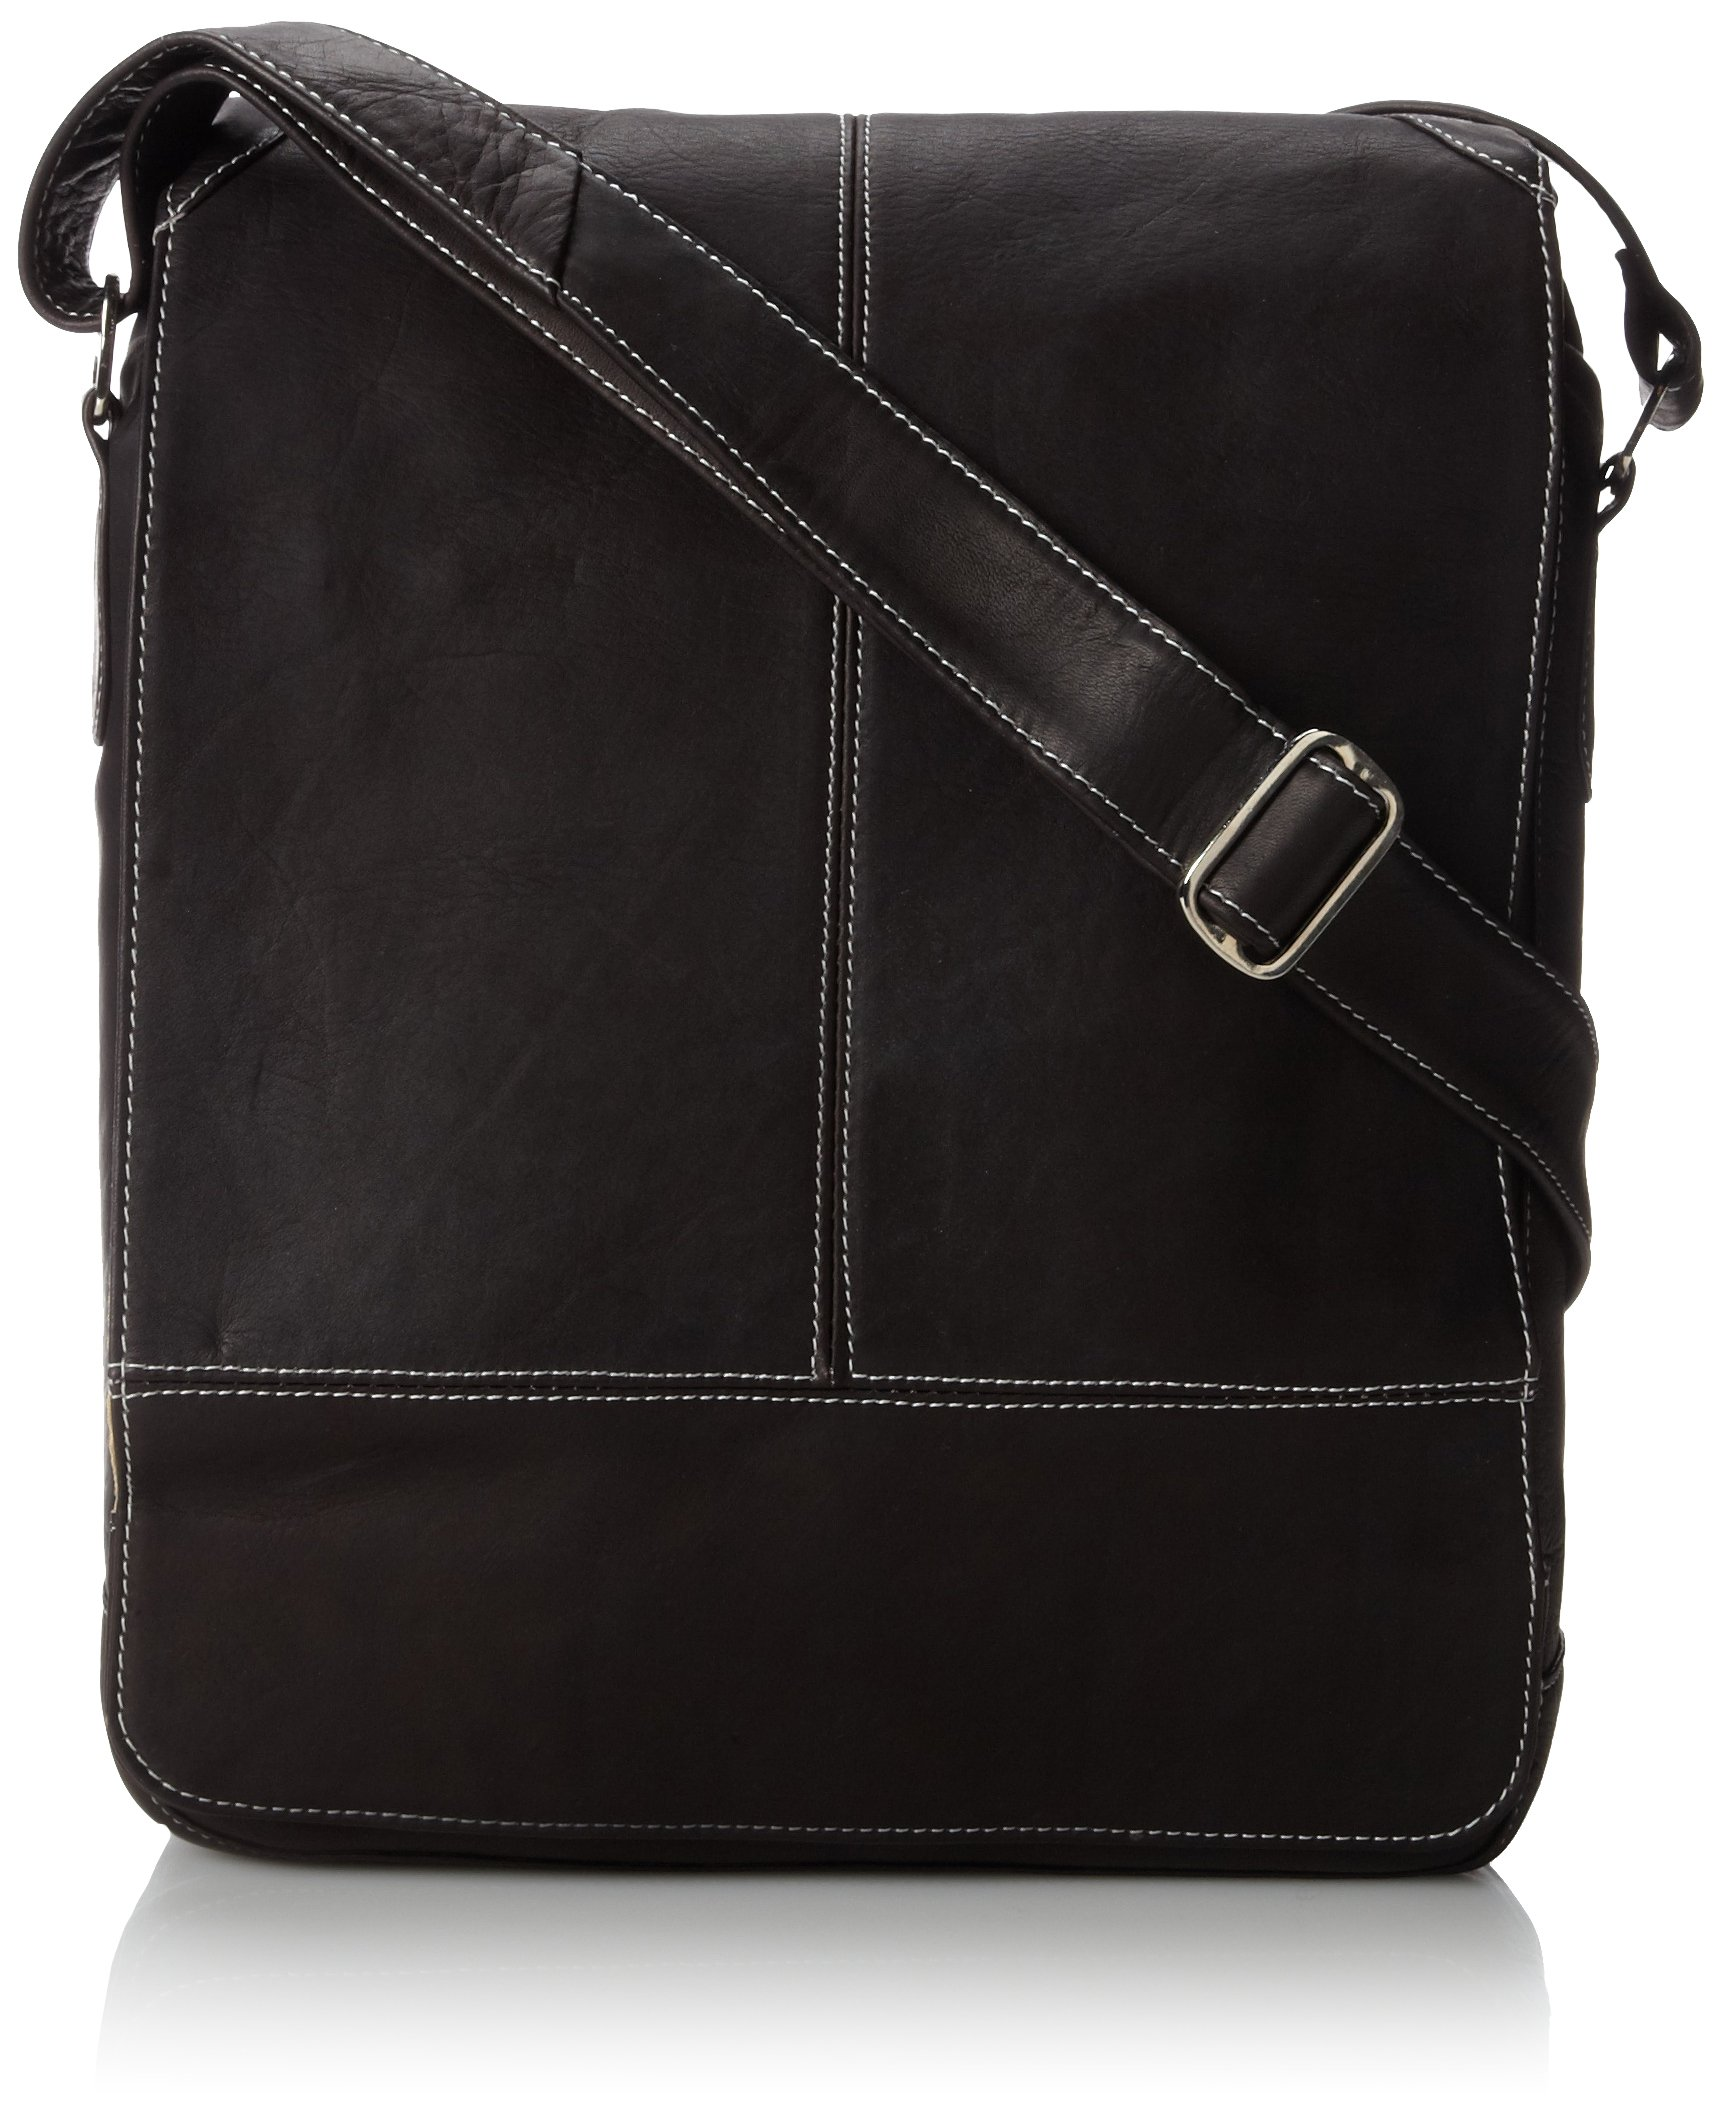 Piel Leather Urban Vertical Messenger Bag, Chocolate, One Size